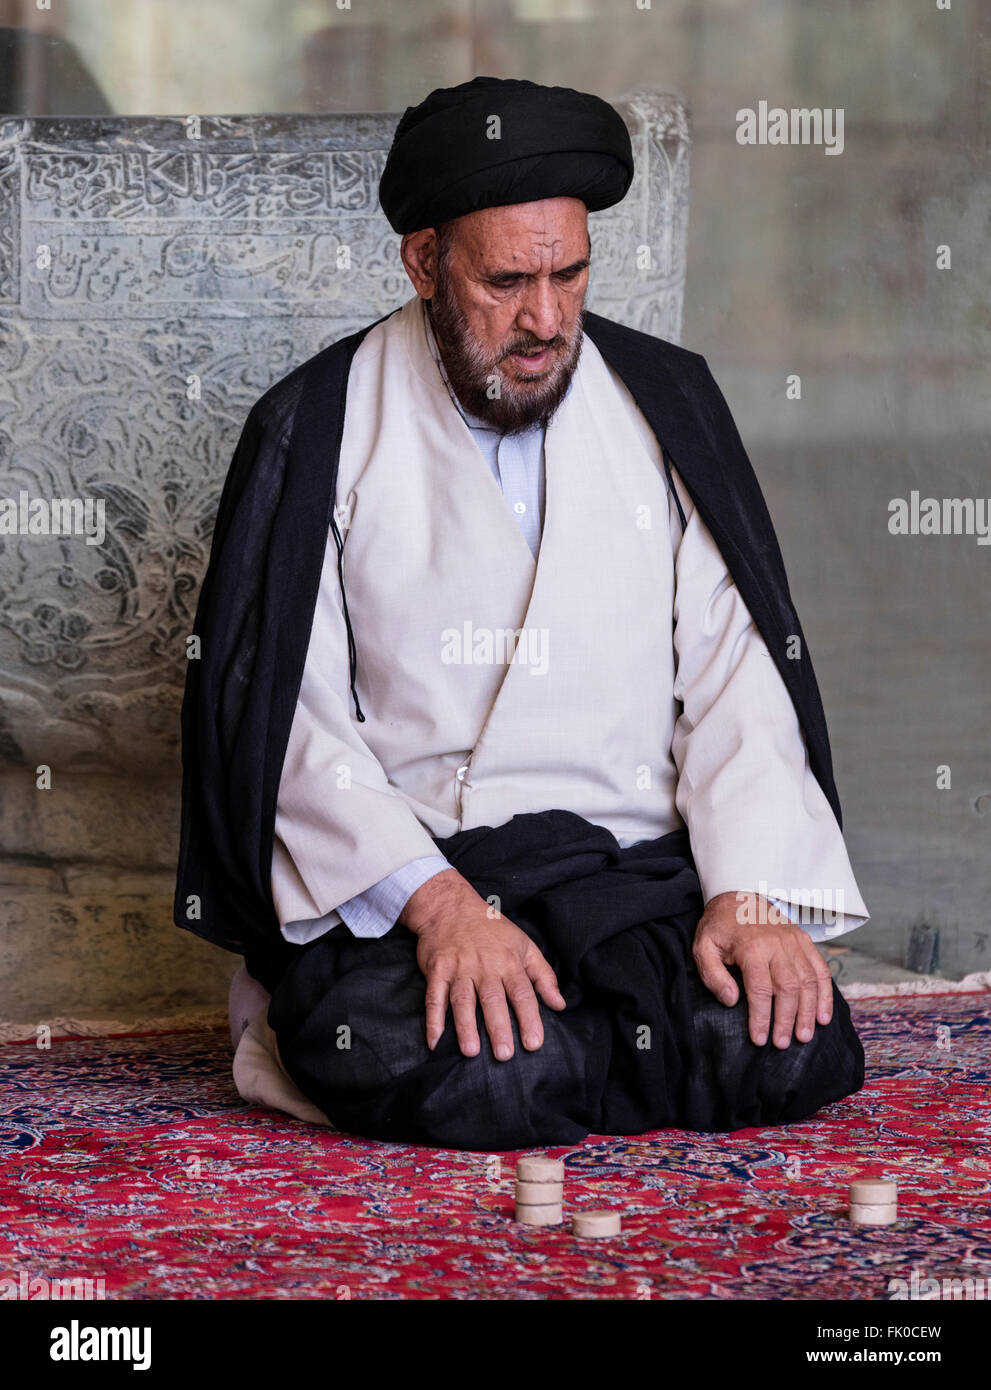 Shia Muslim mullah in turban and gown seated at prayer in the Masjed-e Jame (Friday Mosque), Isfahan, Iran - Stock Image